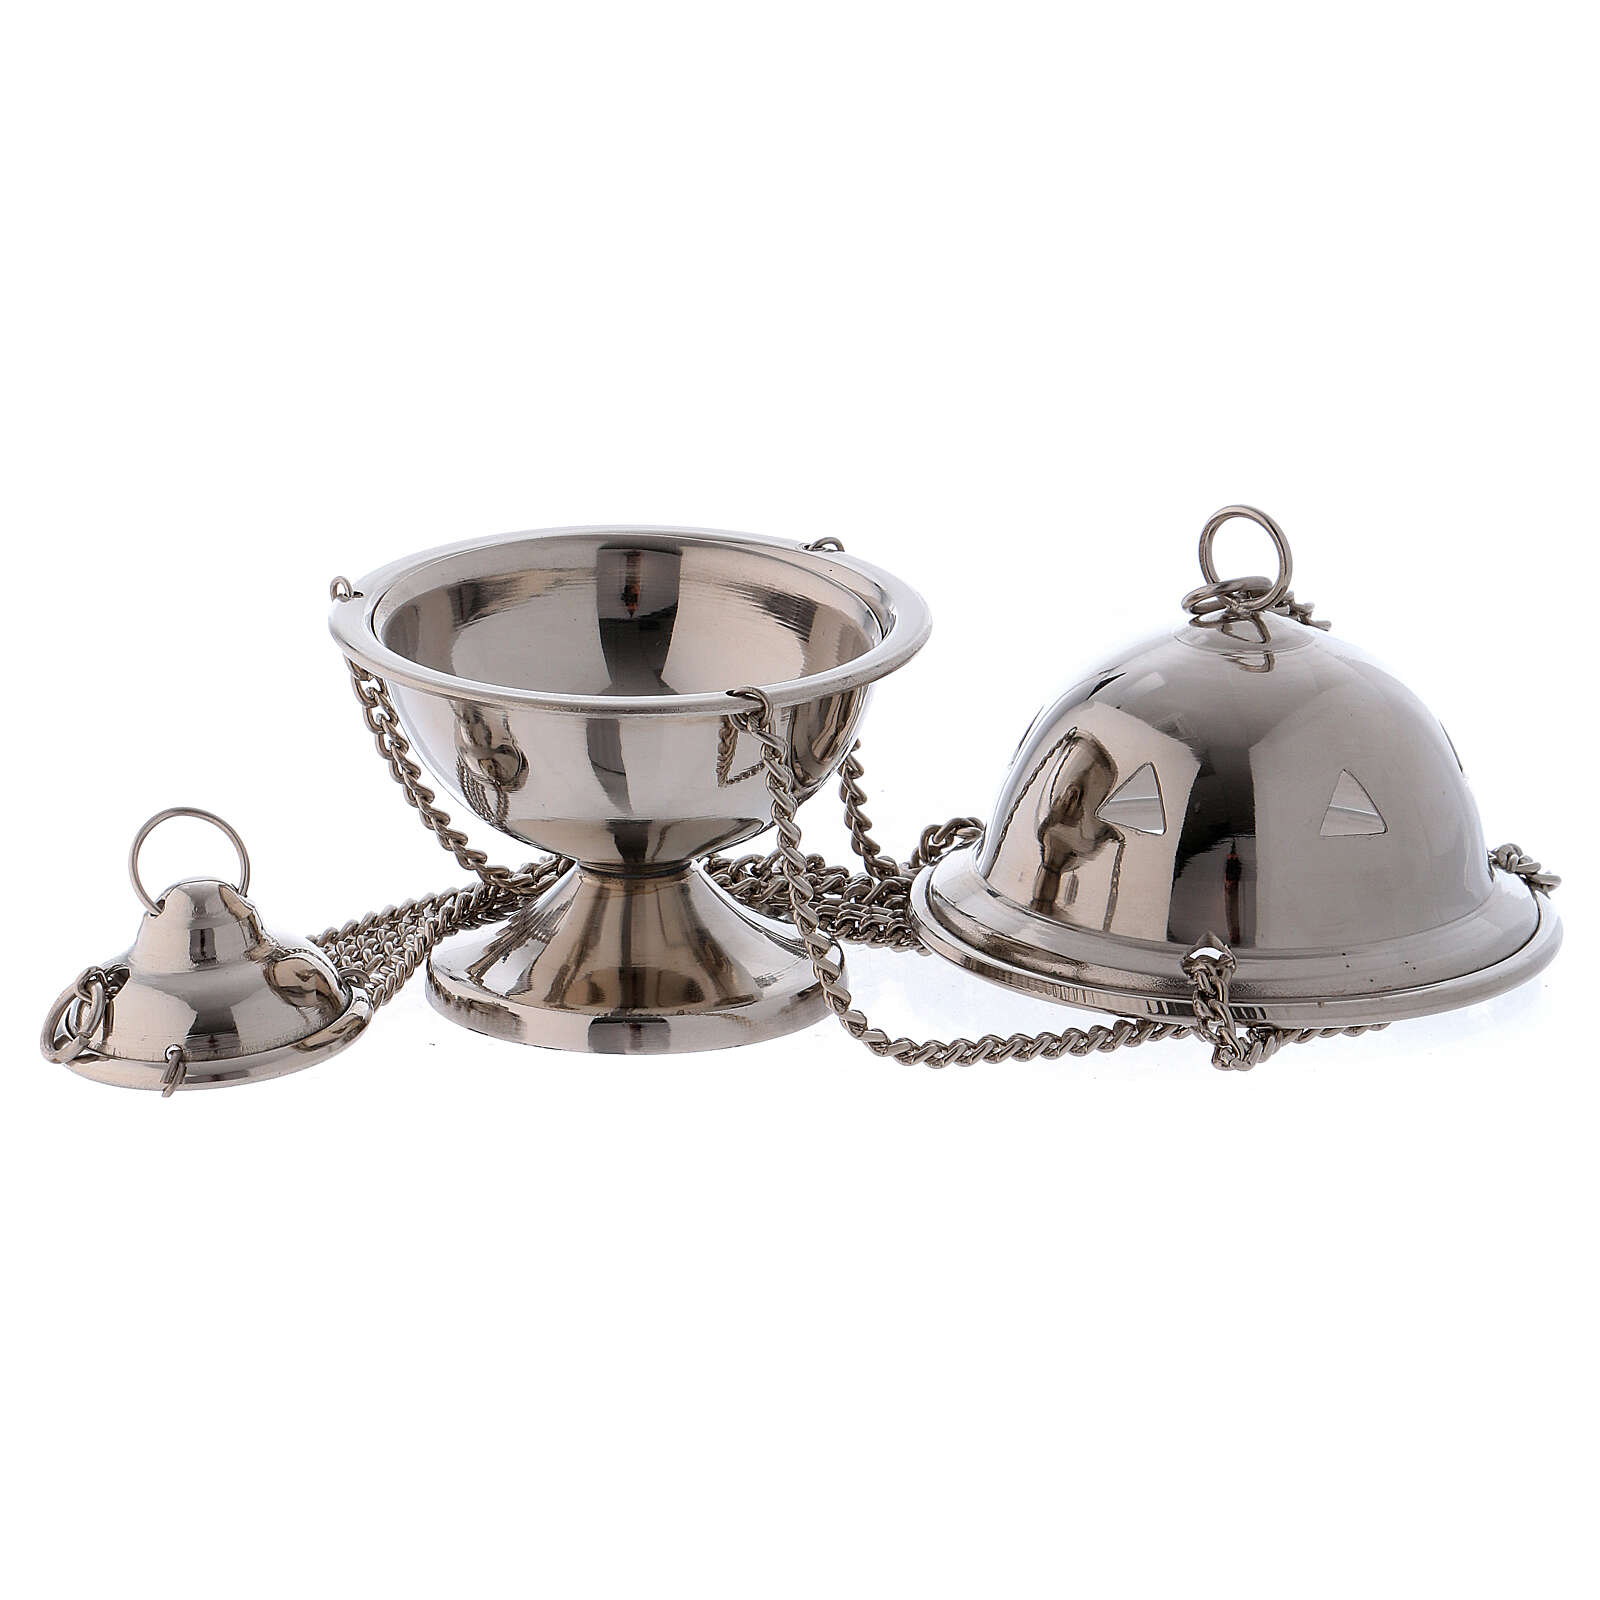 Polished silver-plated brass thurible h 4 in 3